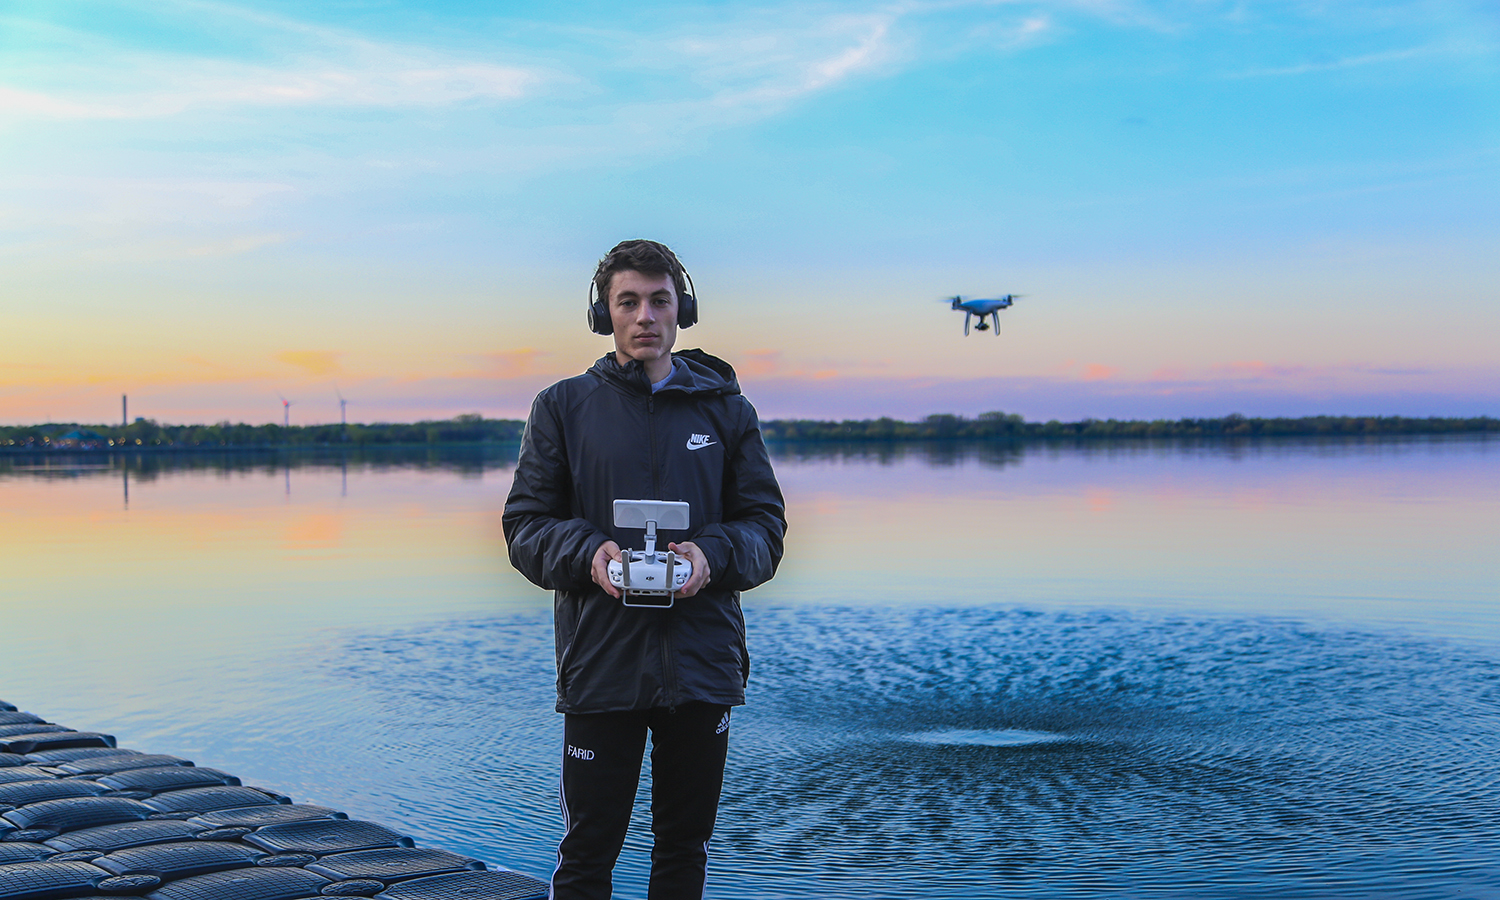 Adam Farid '20 enjoys flying his drone on and around campus and getting aerial shots for his job this summer in the Office of Communications. His favourite place to fly the drone is over Seneca Lake.